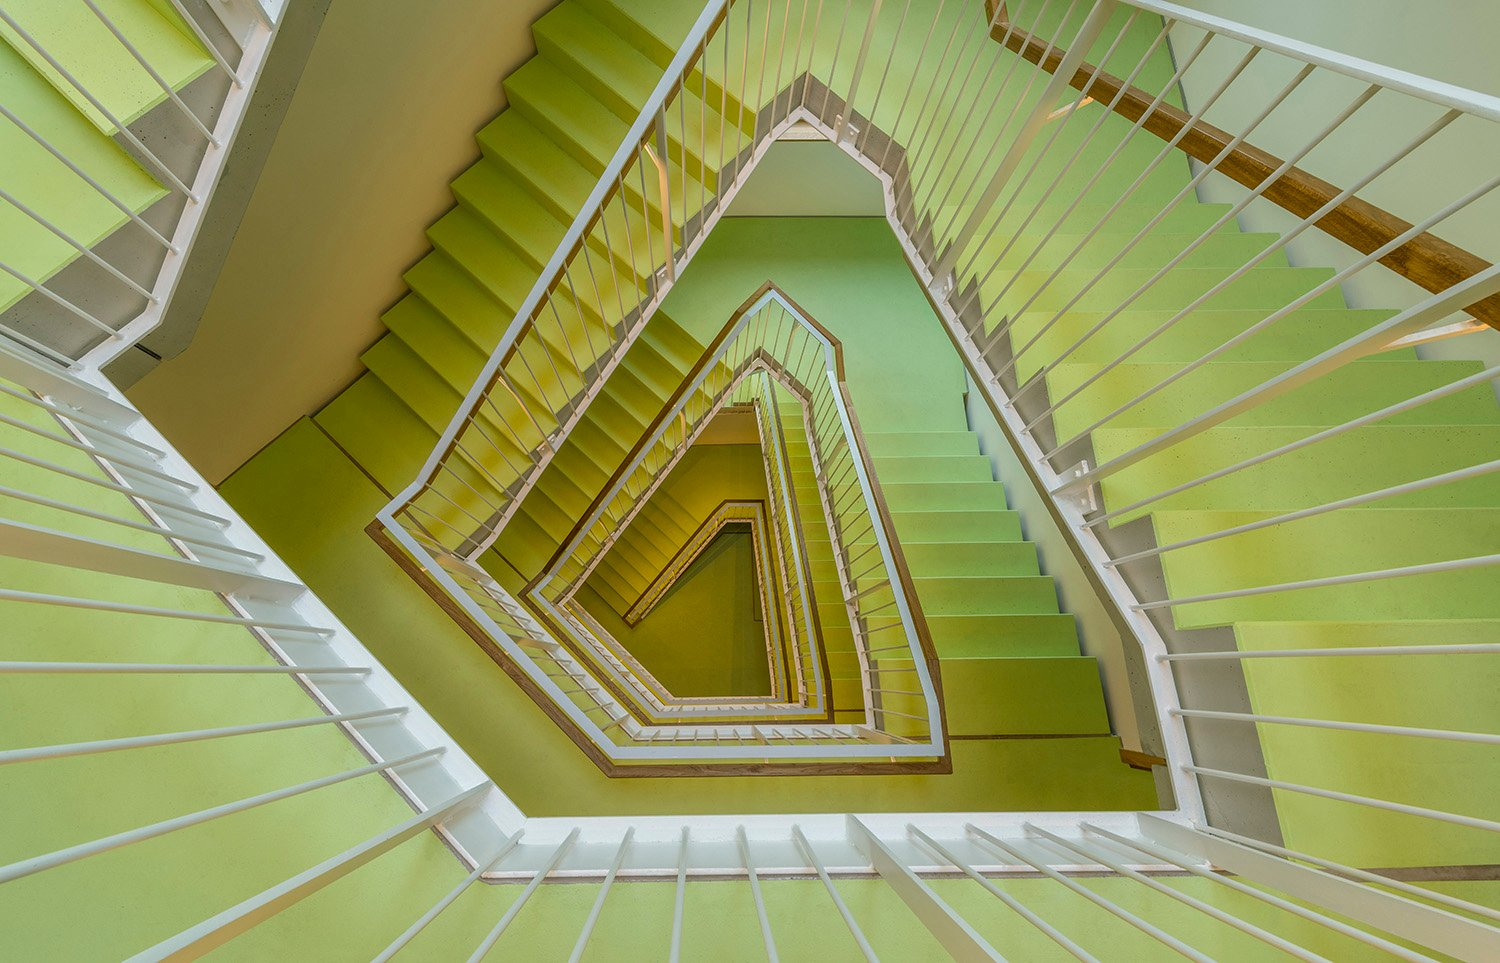 The staircase serves as an attractive area where residents will naturally meet. David Matthiessen